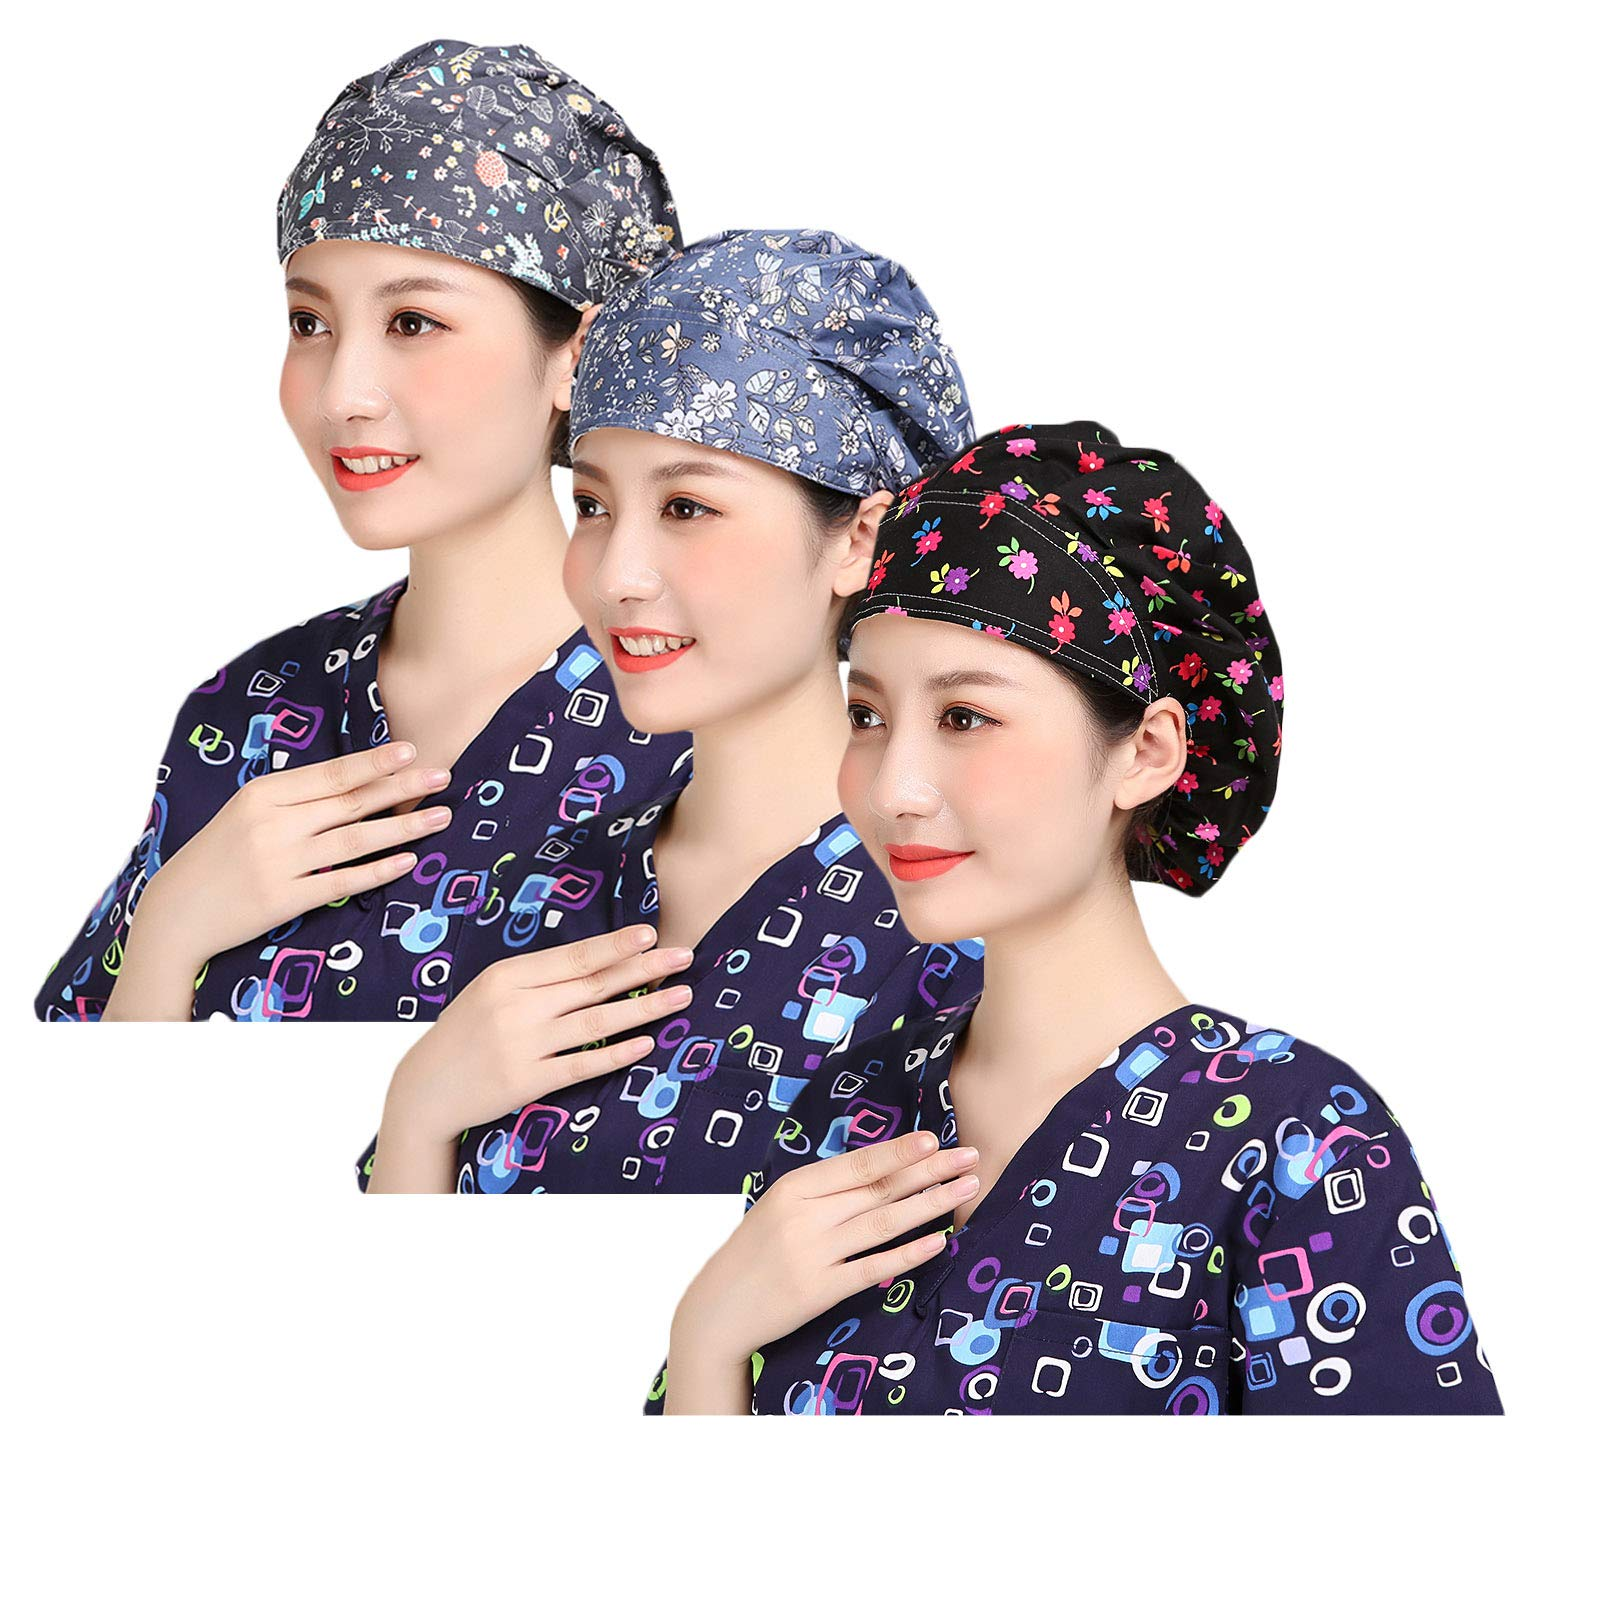 YUENA CARE Scrub Surgical Cap Women Surgery Hats Hospital Doctor Bouffant Hats with Sweatband